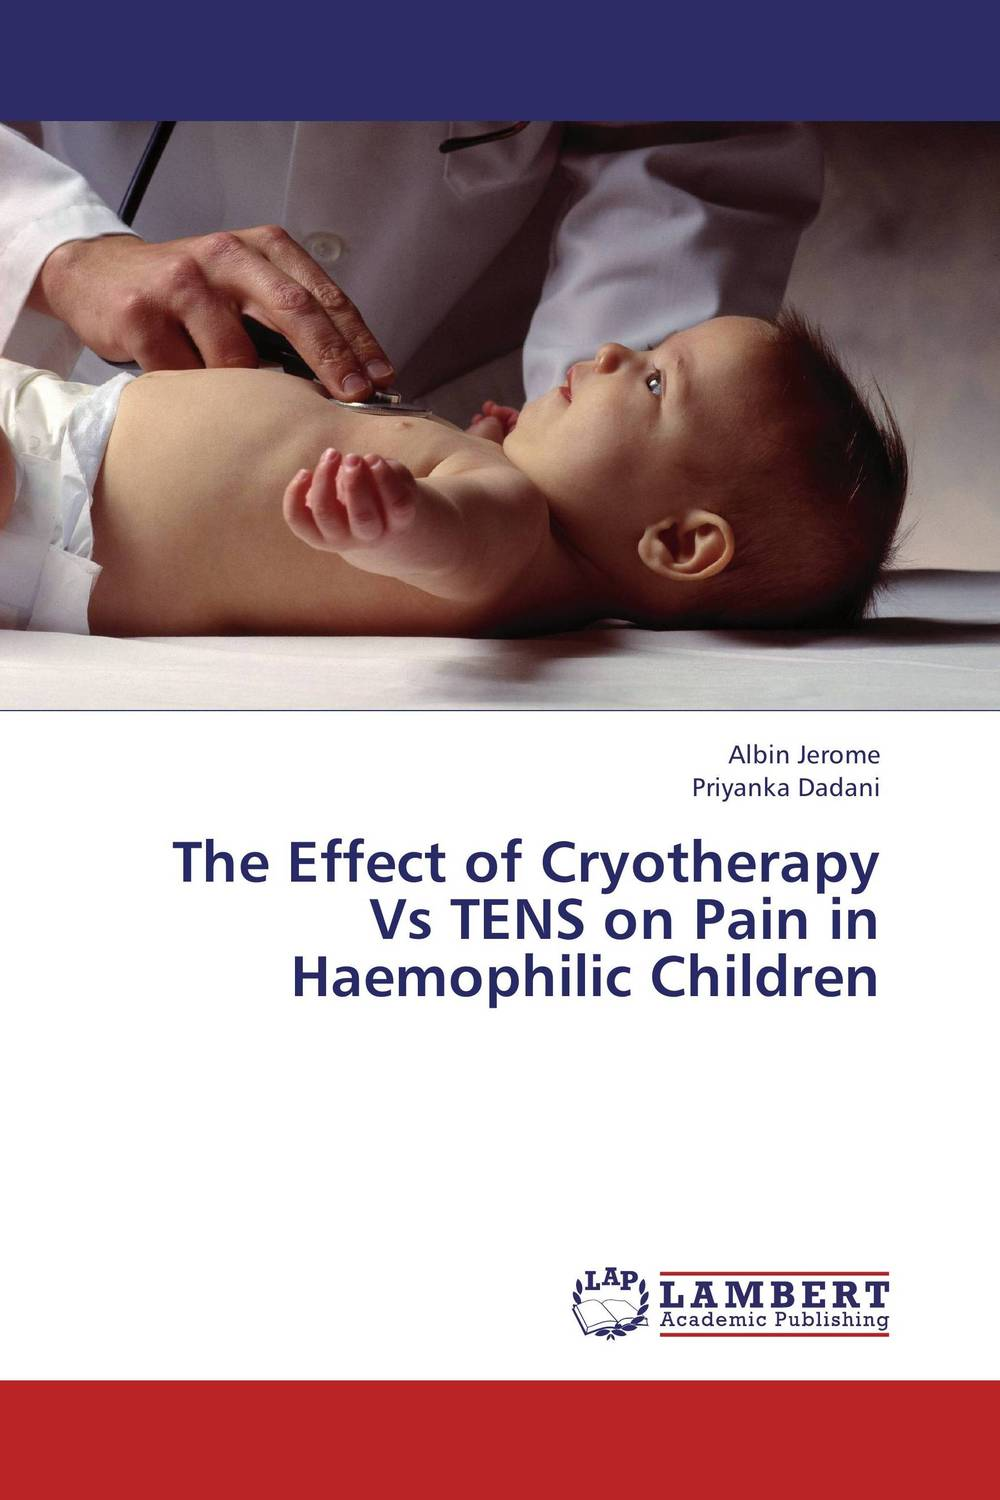 The Effect of Cryotherapy Vs TENS on Pain in Haemophilic Children keen pain massager for the pain in knee joint and osteoarthritis knee treatment